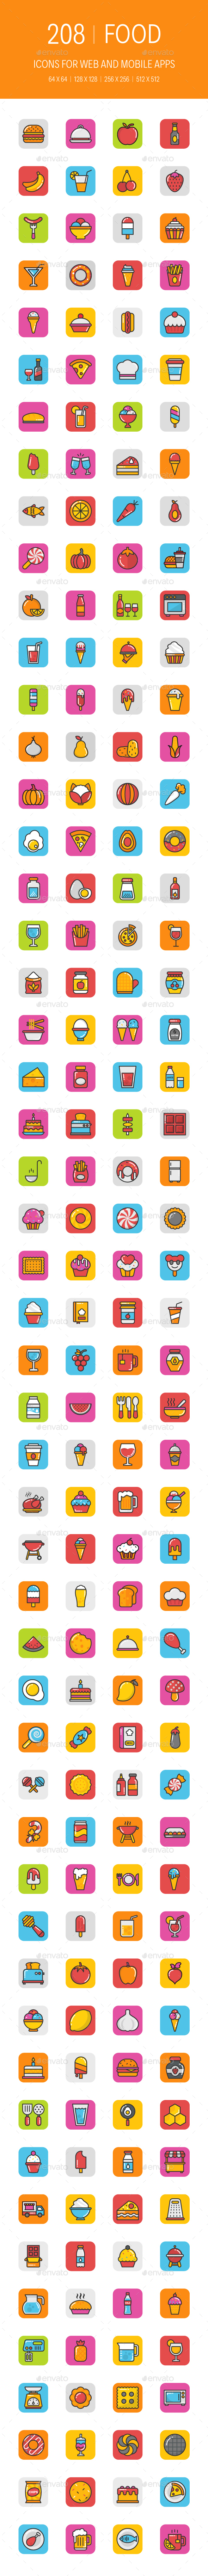 208 Food Icons - Icons